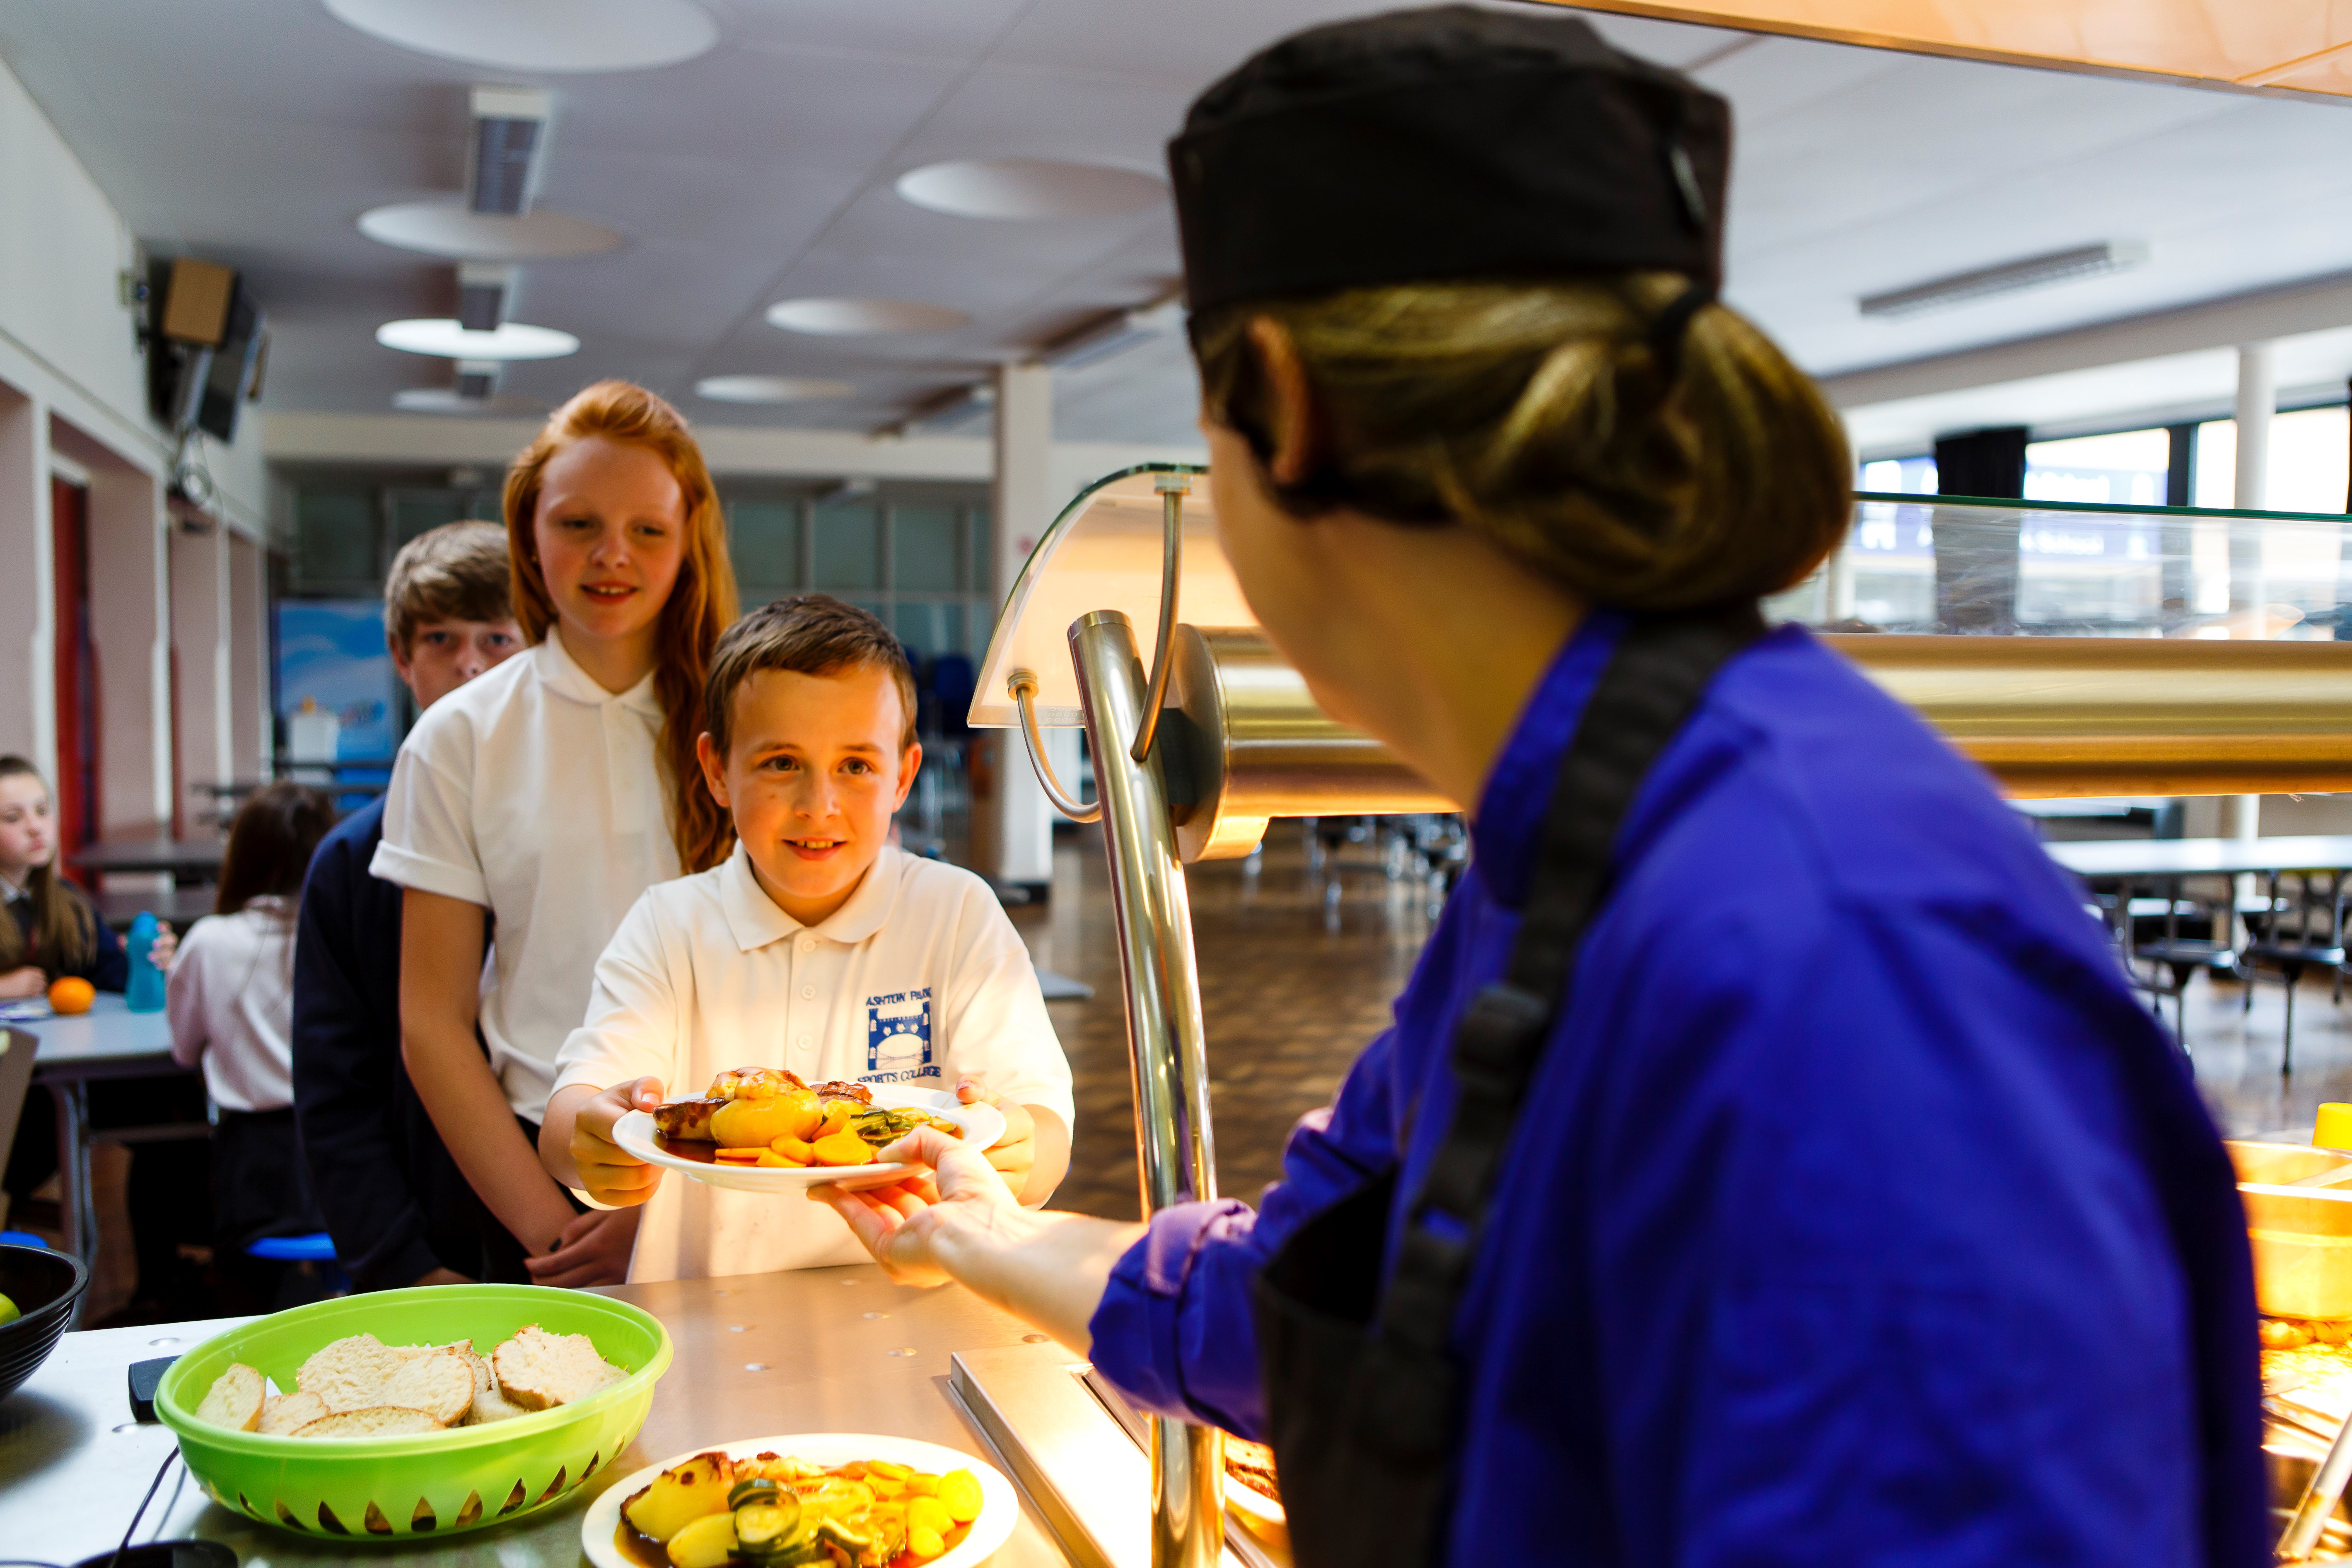 caterer children food serving school